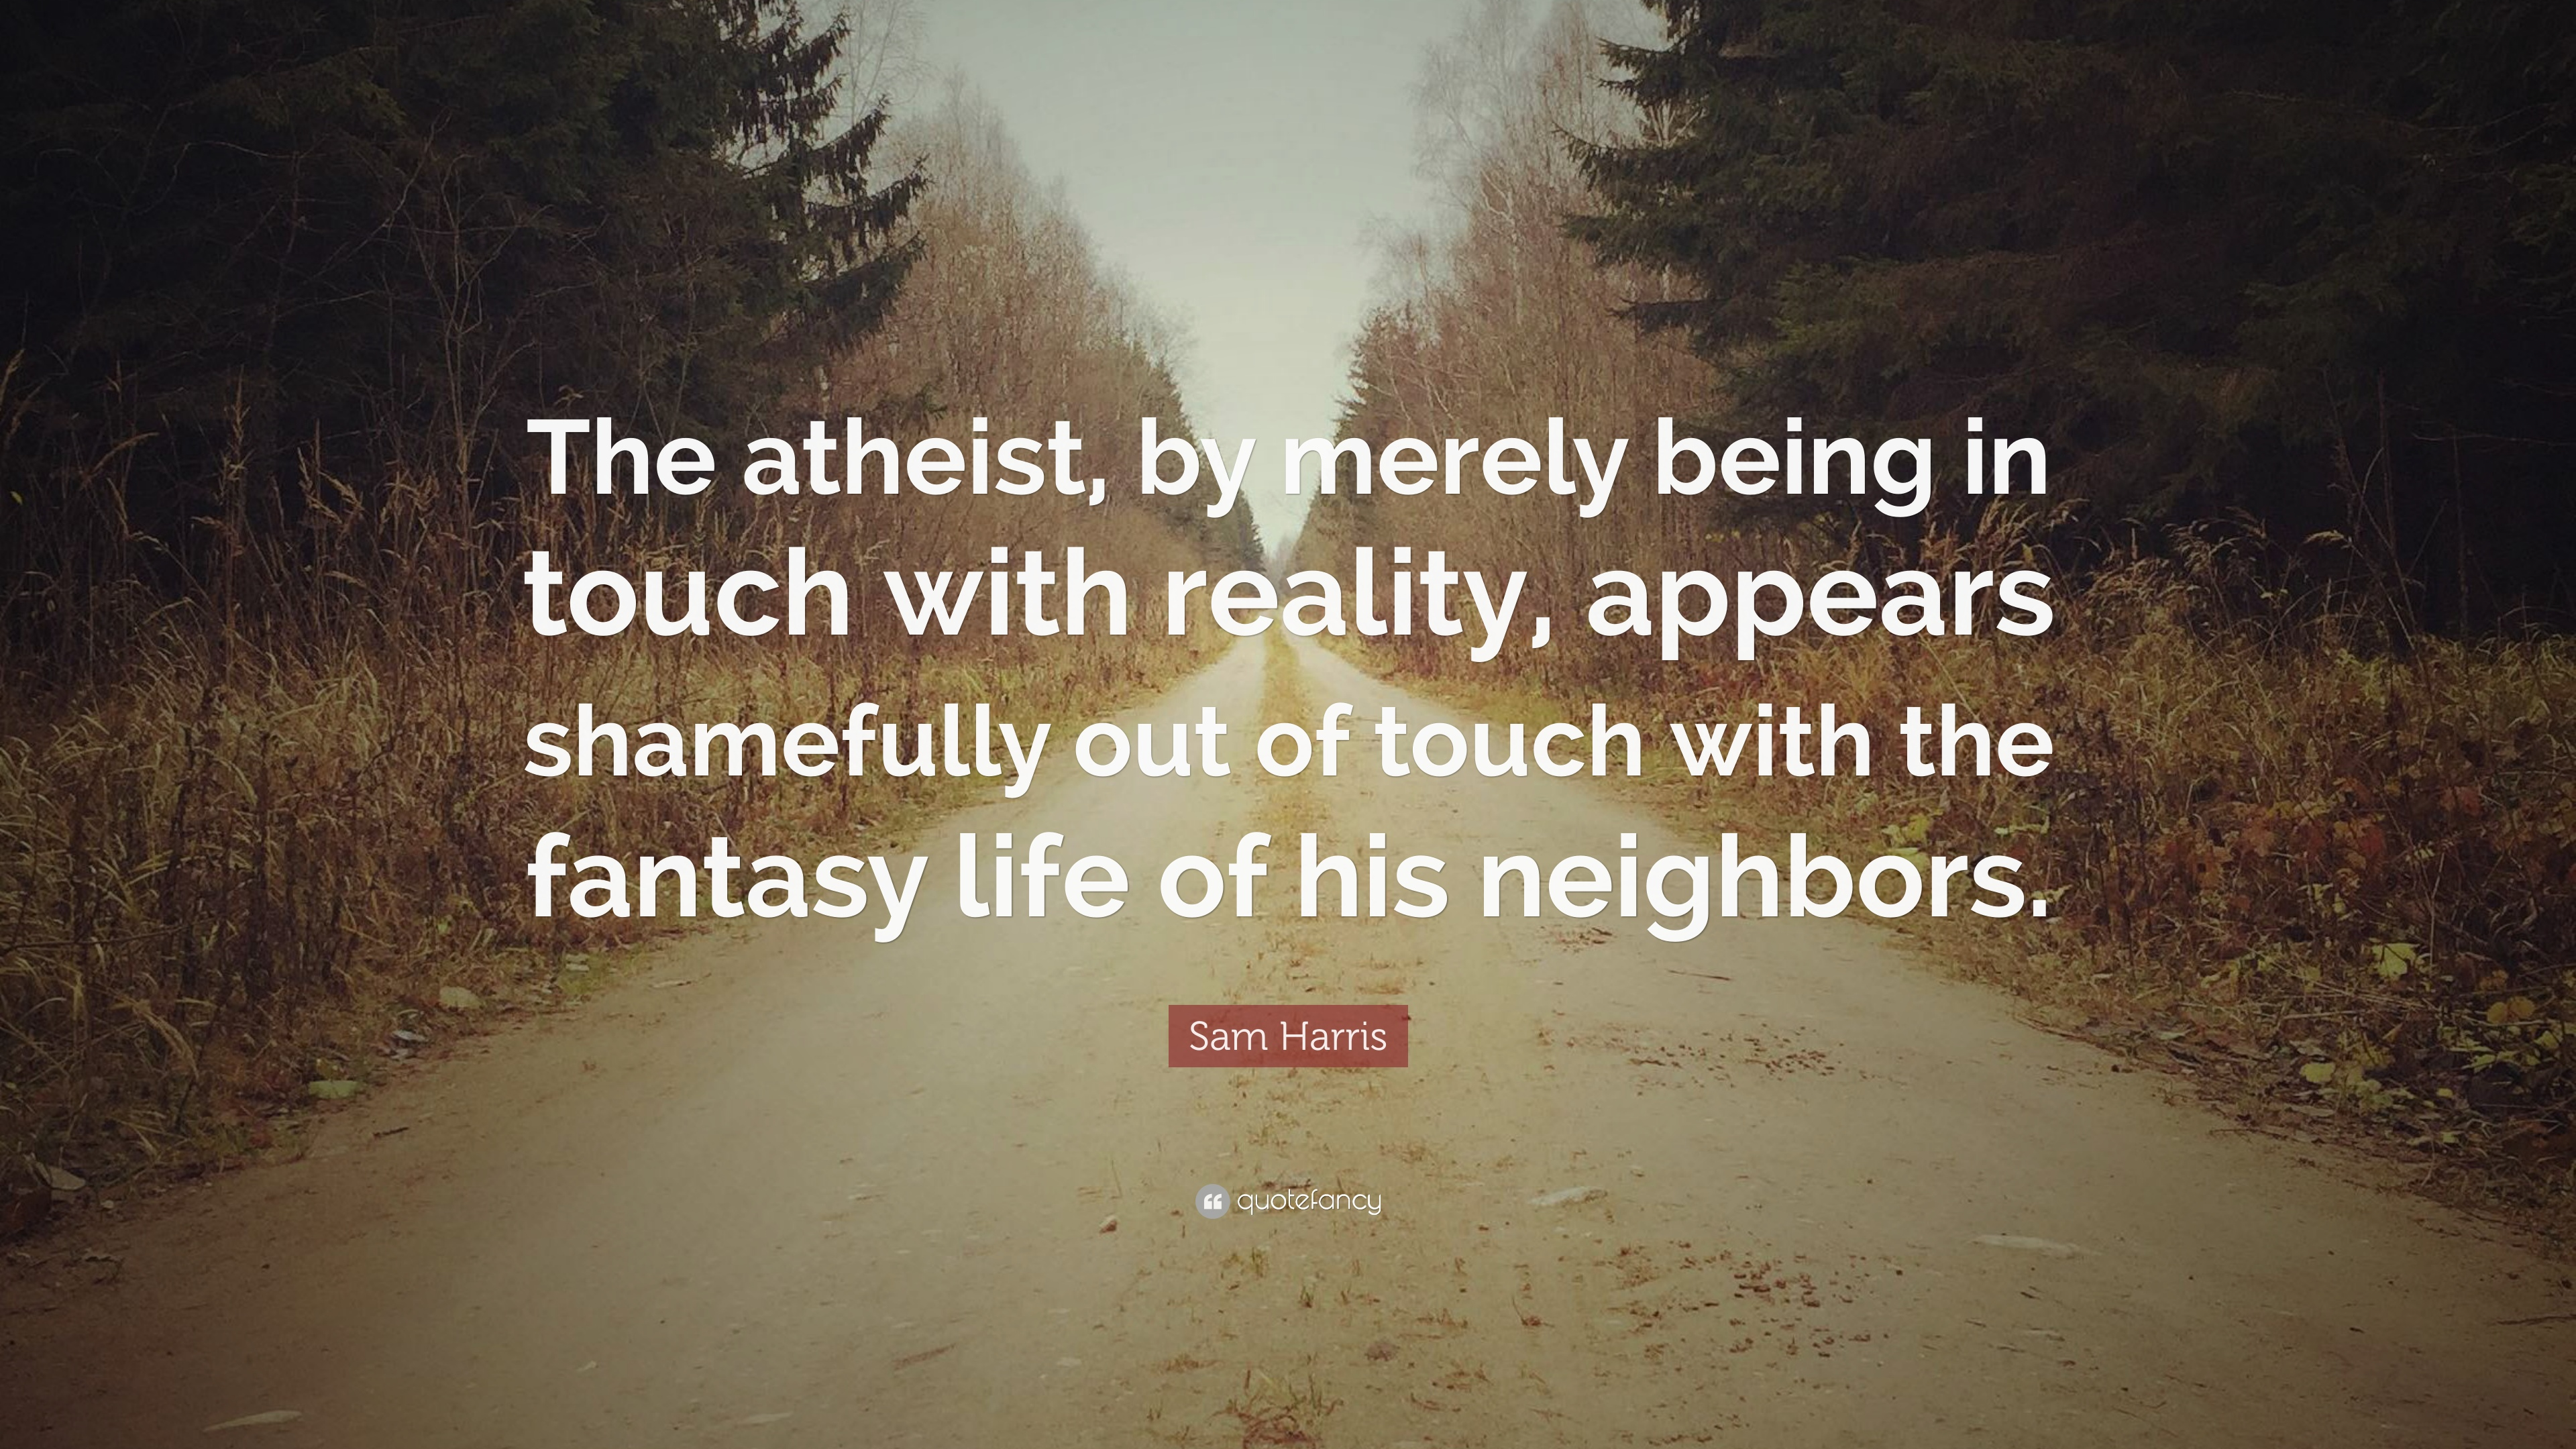 Image of: Love Sam Harris Quote the Atheist By Merely Being In Touch With Reality Success Magazine Sam Harris Quote the Atheist By Merely Being In Touch With